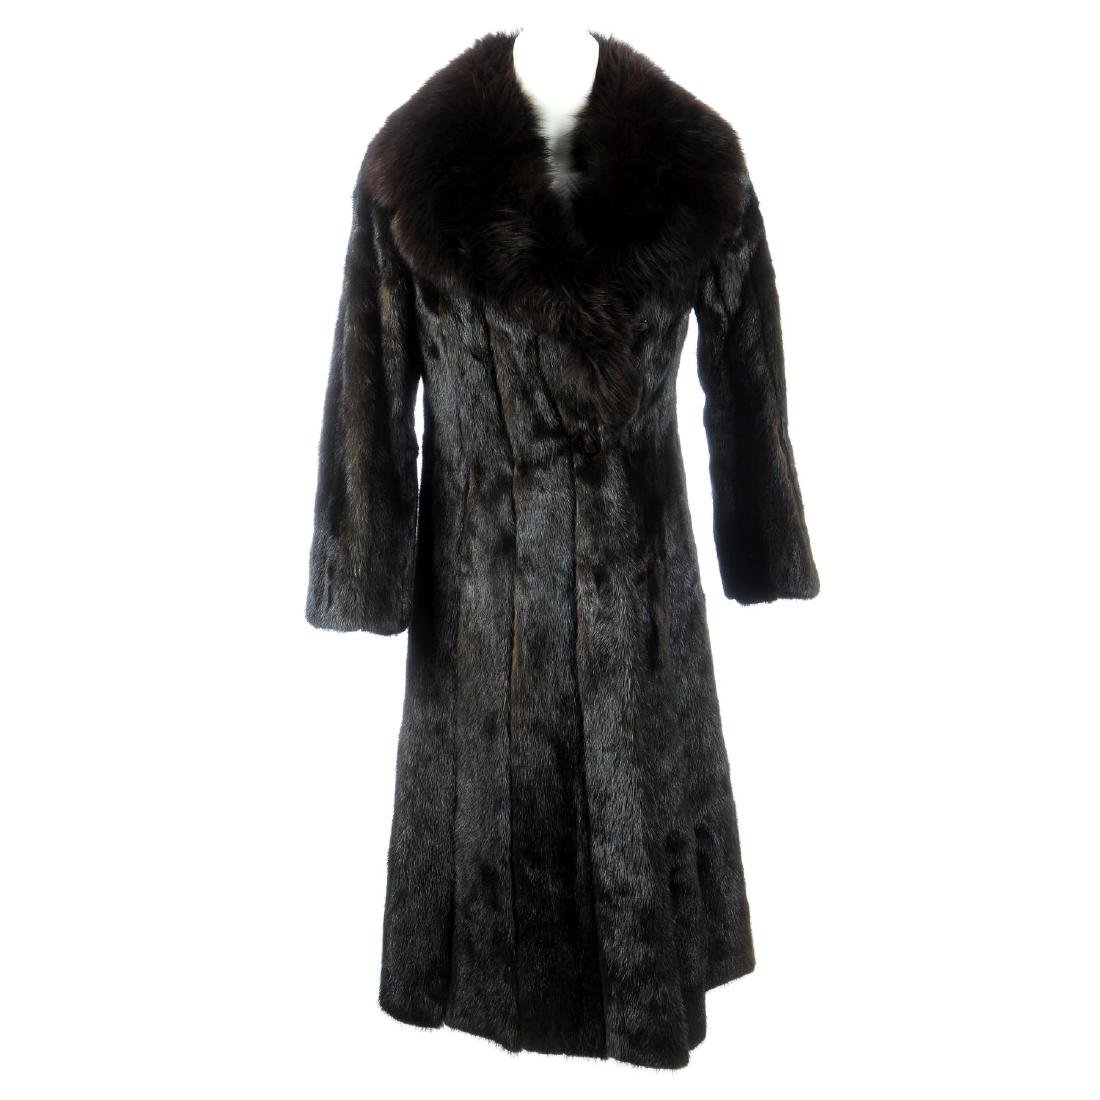 A dark ranch mink full-length coat with fox fur collar.